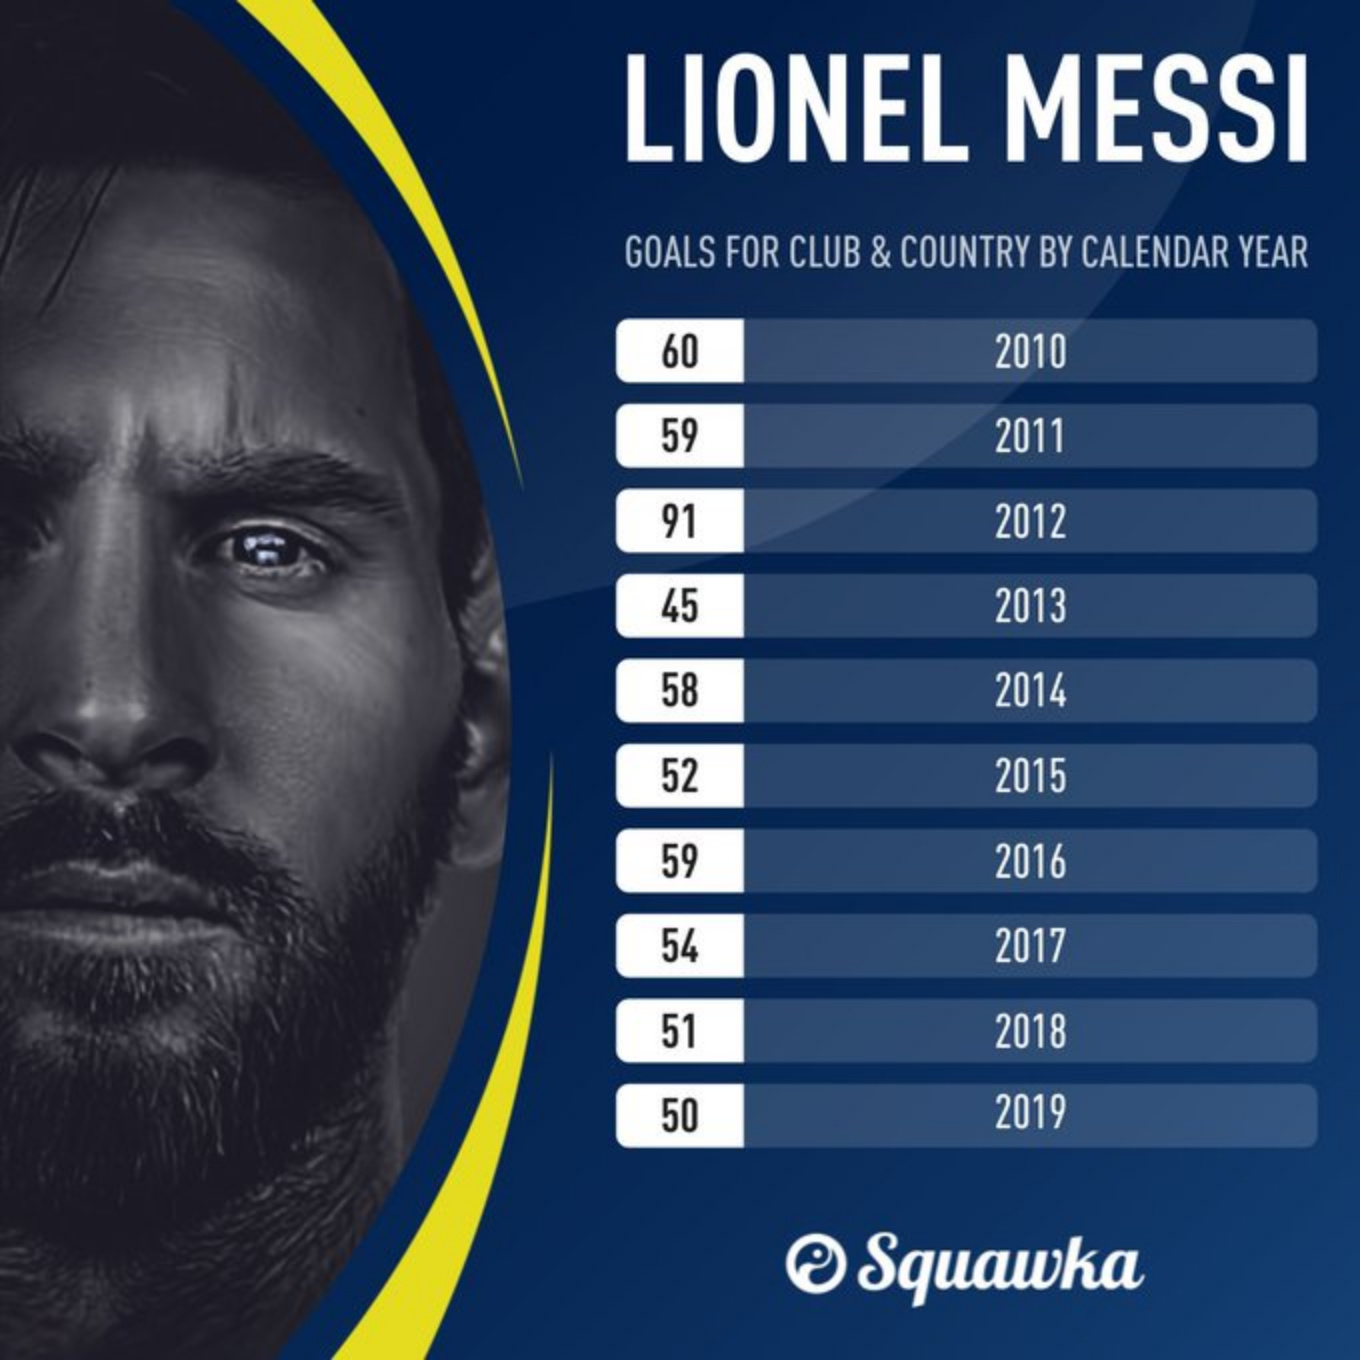 Messi finishes 2010s with 50+ goals in 9 out of 10 yrs, for a grand total of 579